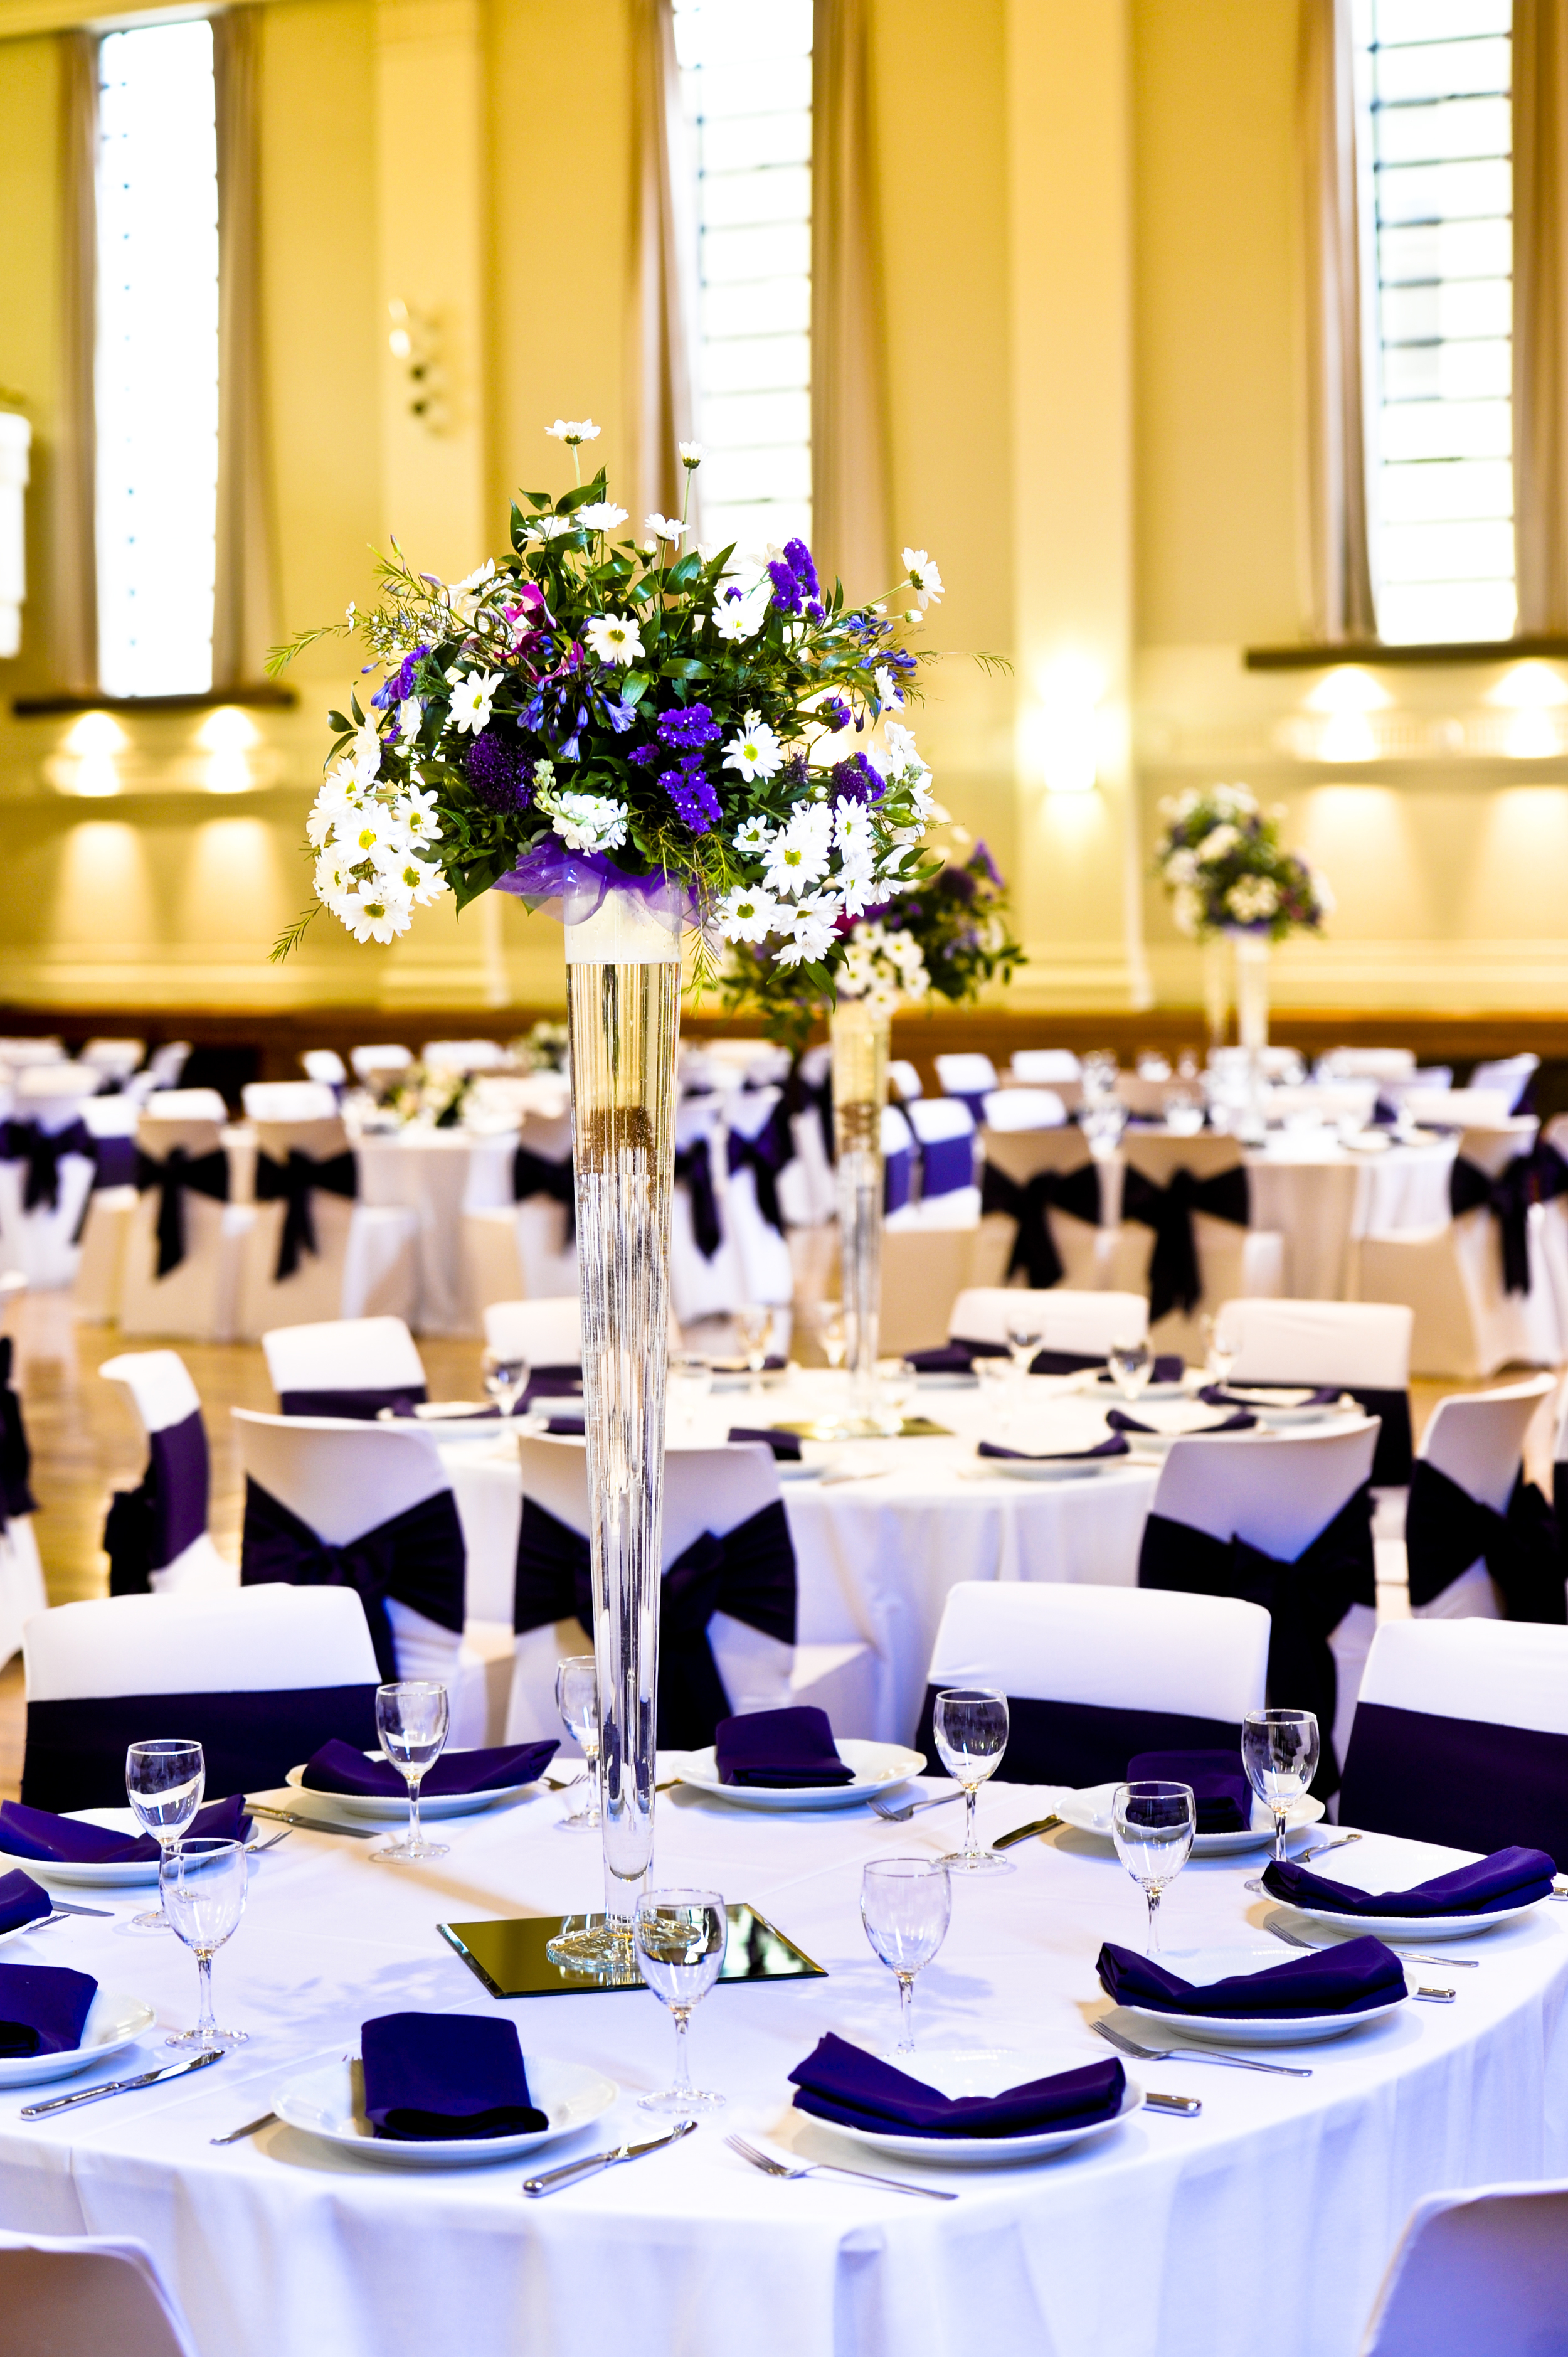 A wedding at Stoke Newington Town Hall Assembly Hall